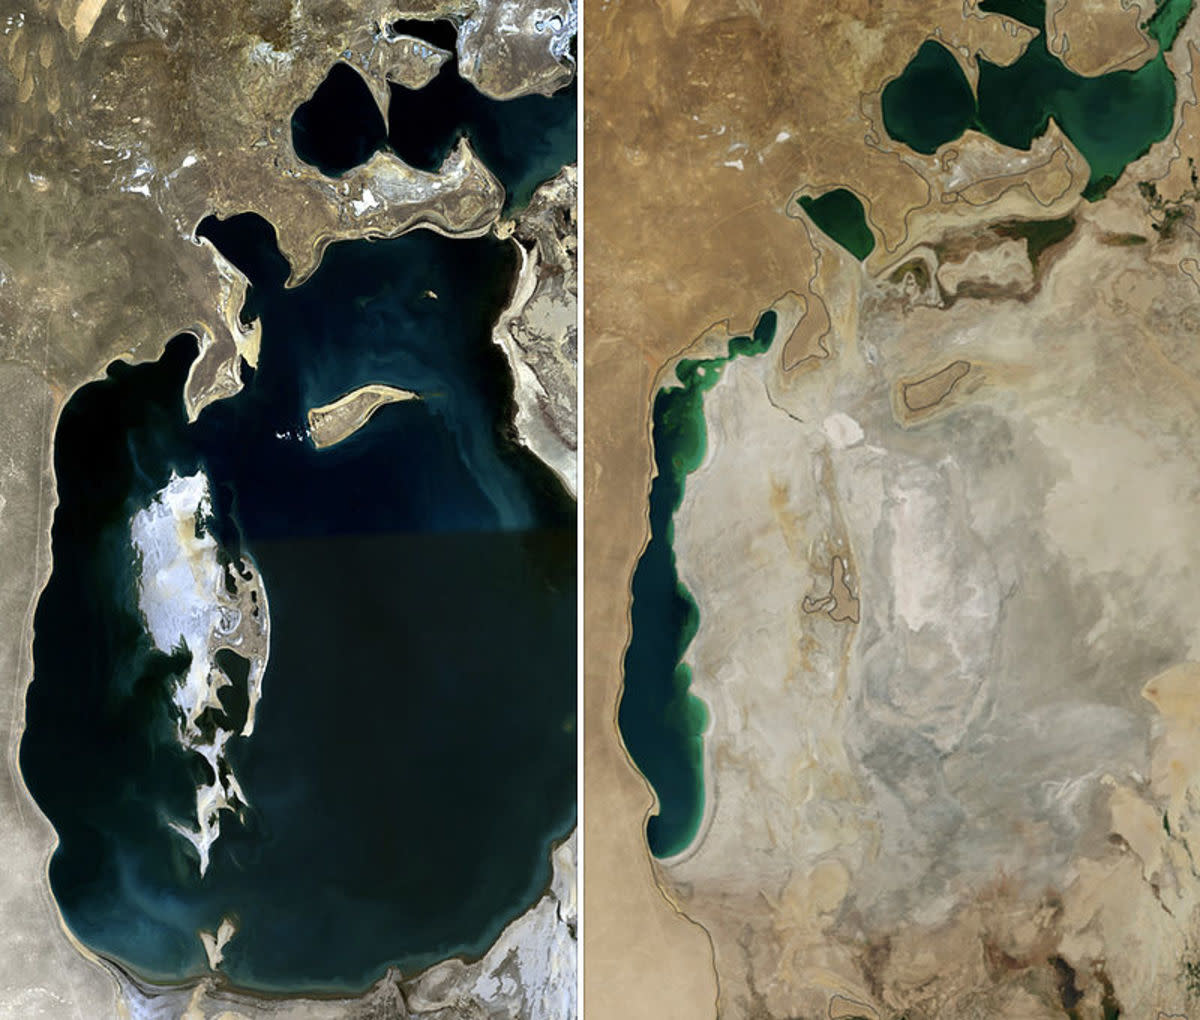 Aral Sea before (left) and after water diversion